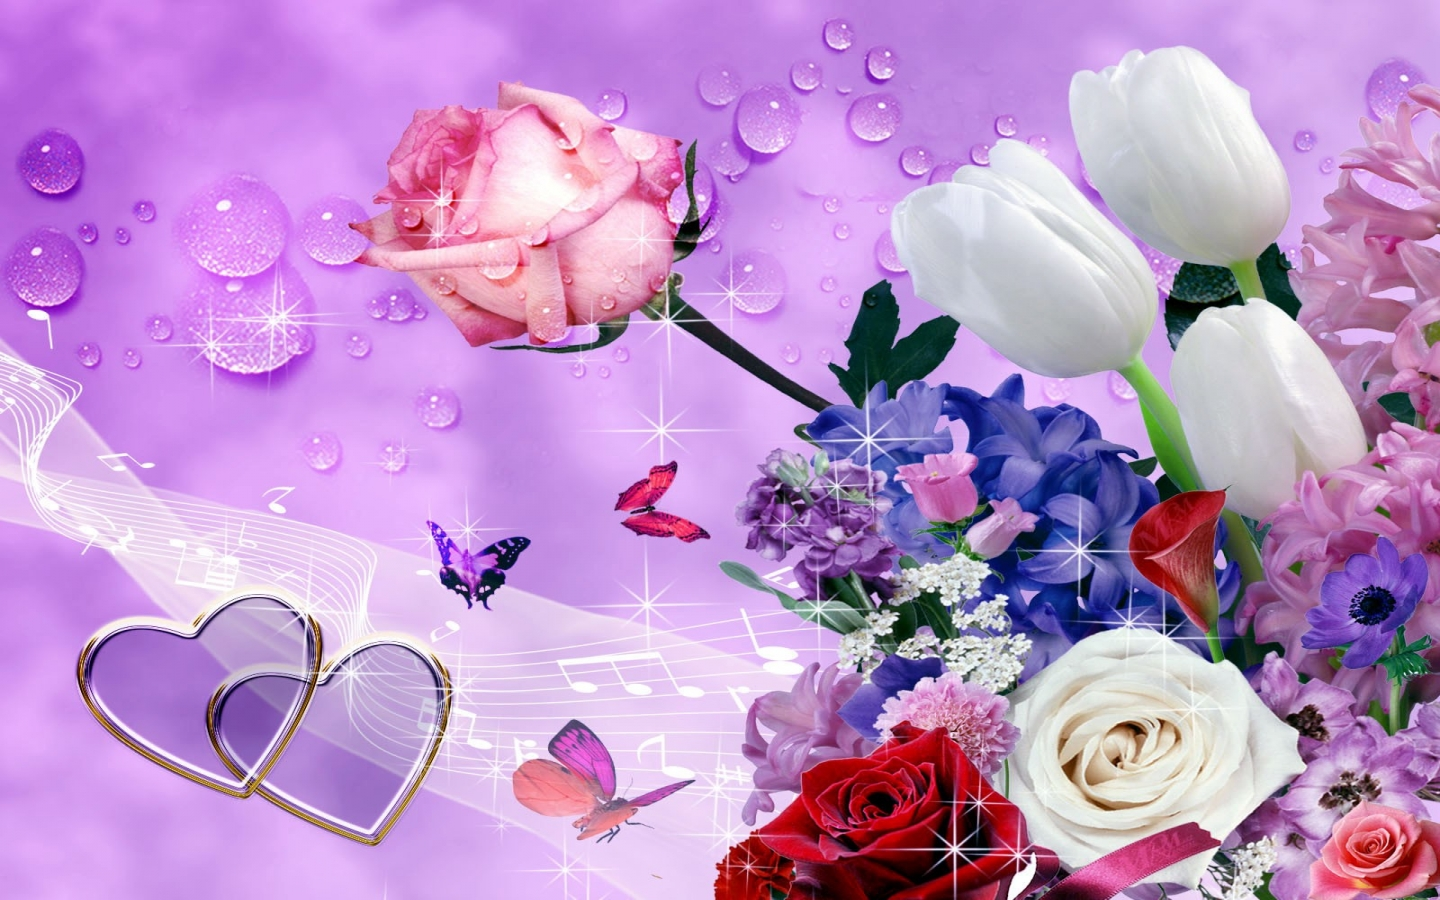 Download Images Of Flowers.